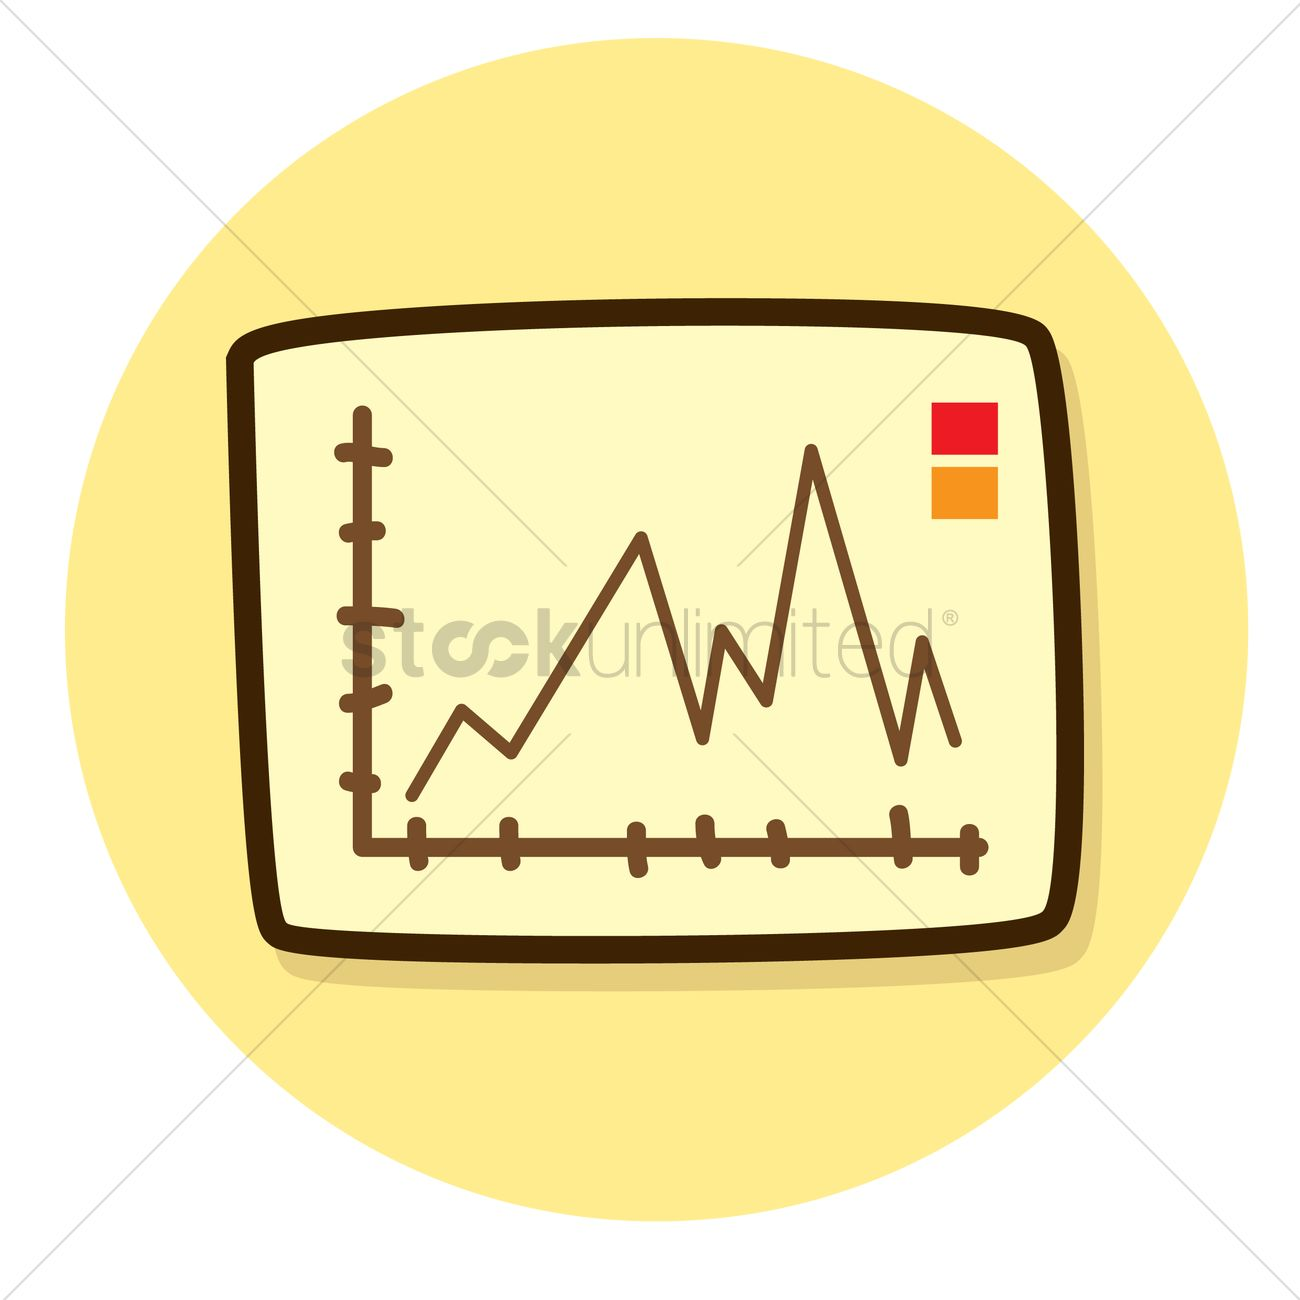 line graph vector image - 1241505 | stockunlimited